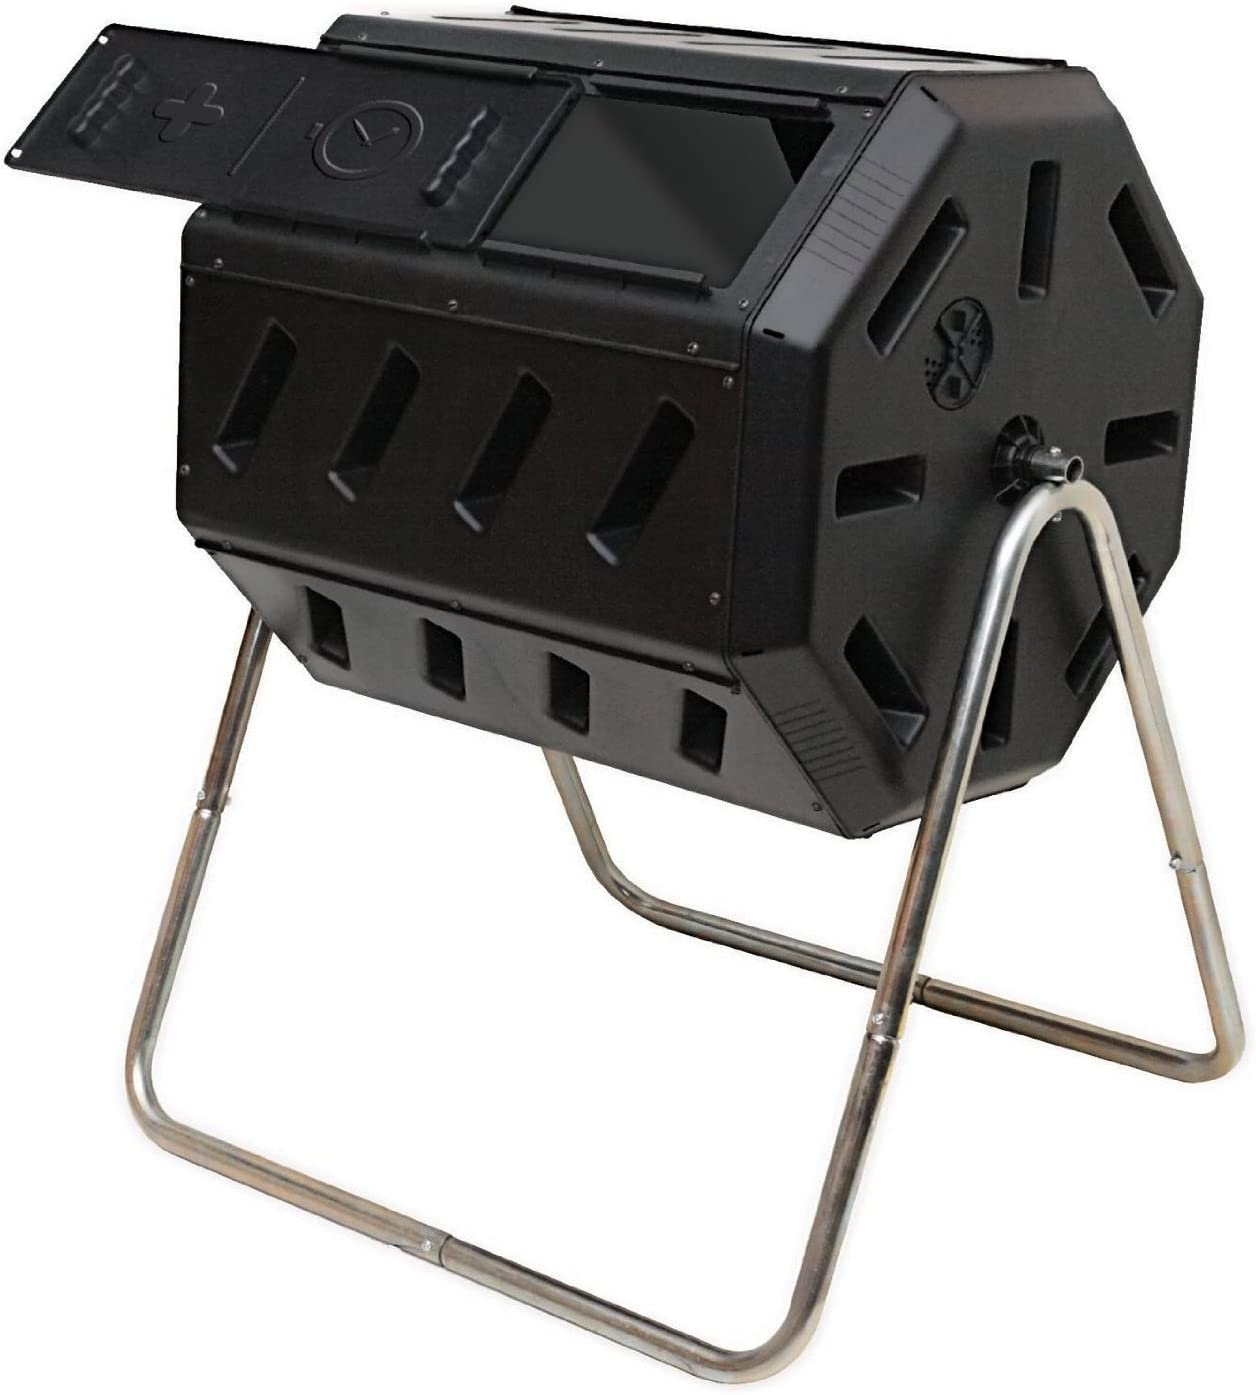 Yimby Tumbler Composter : Great Bargain Price Option